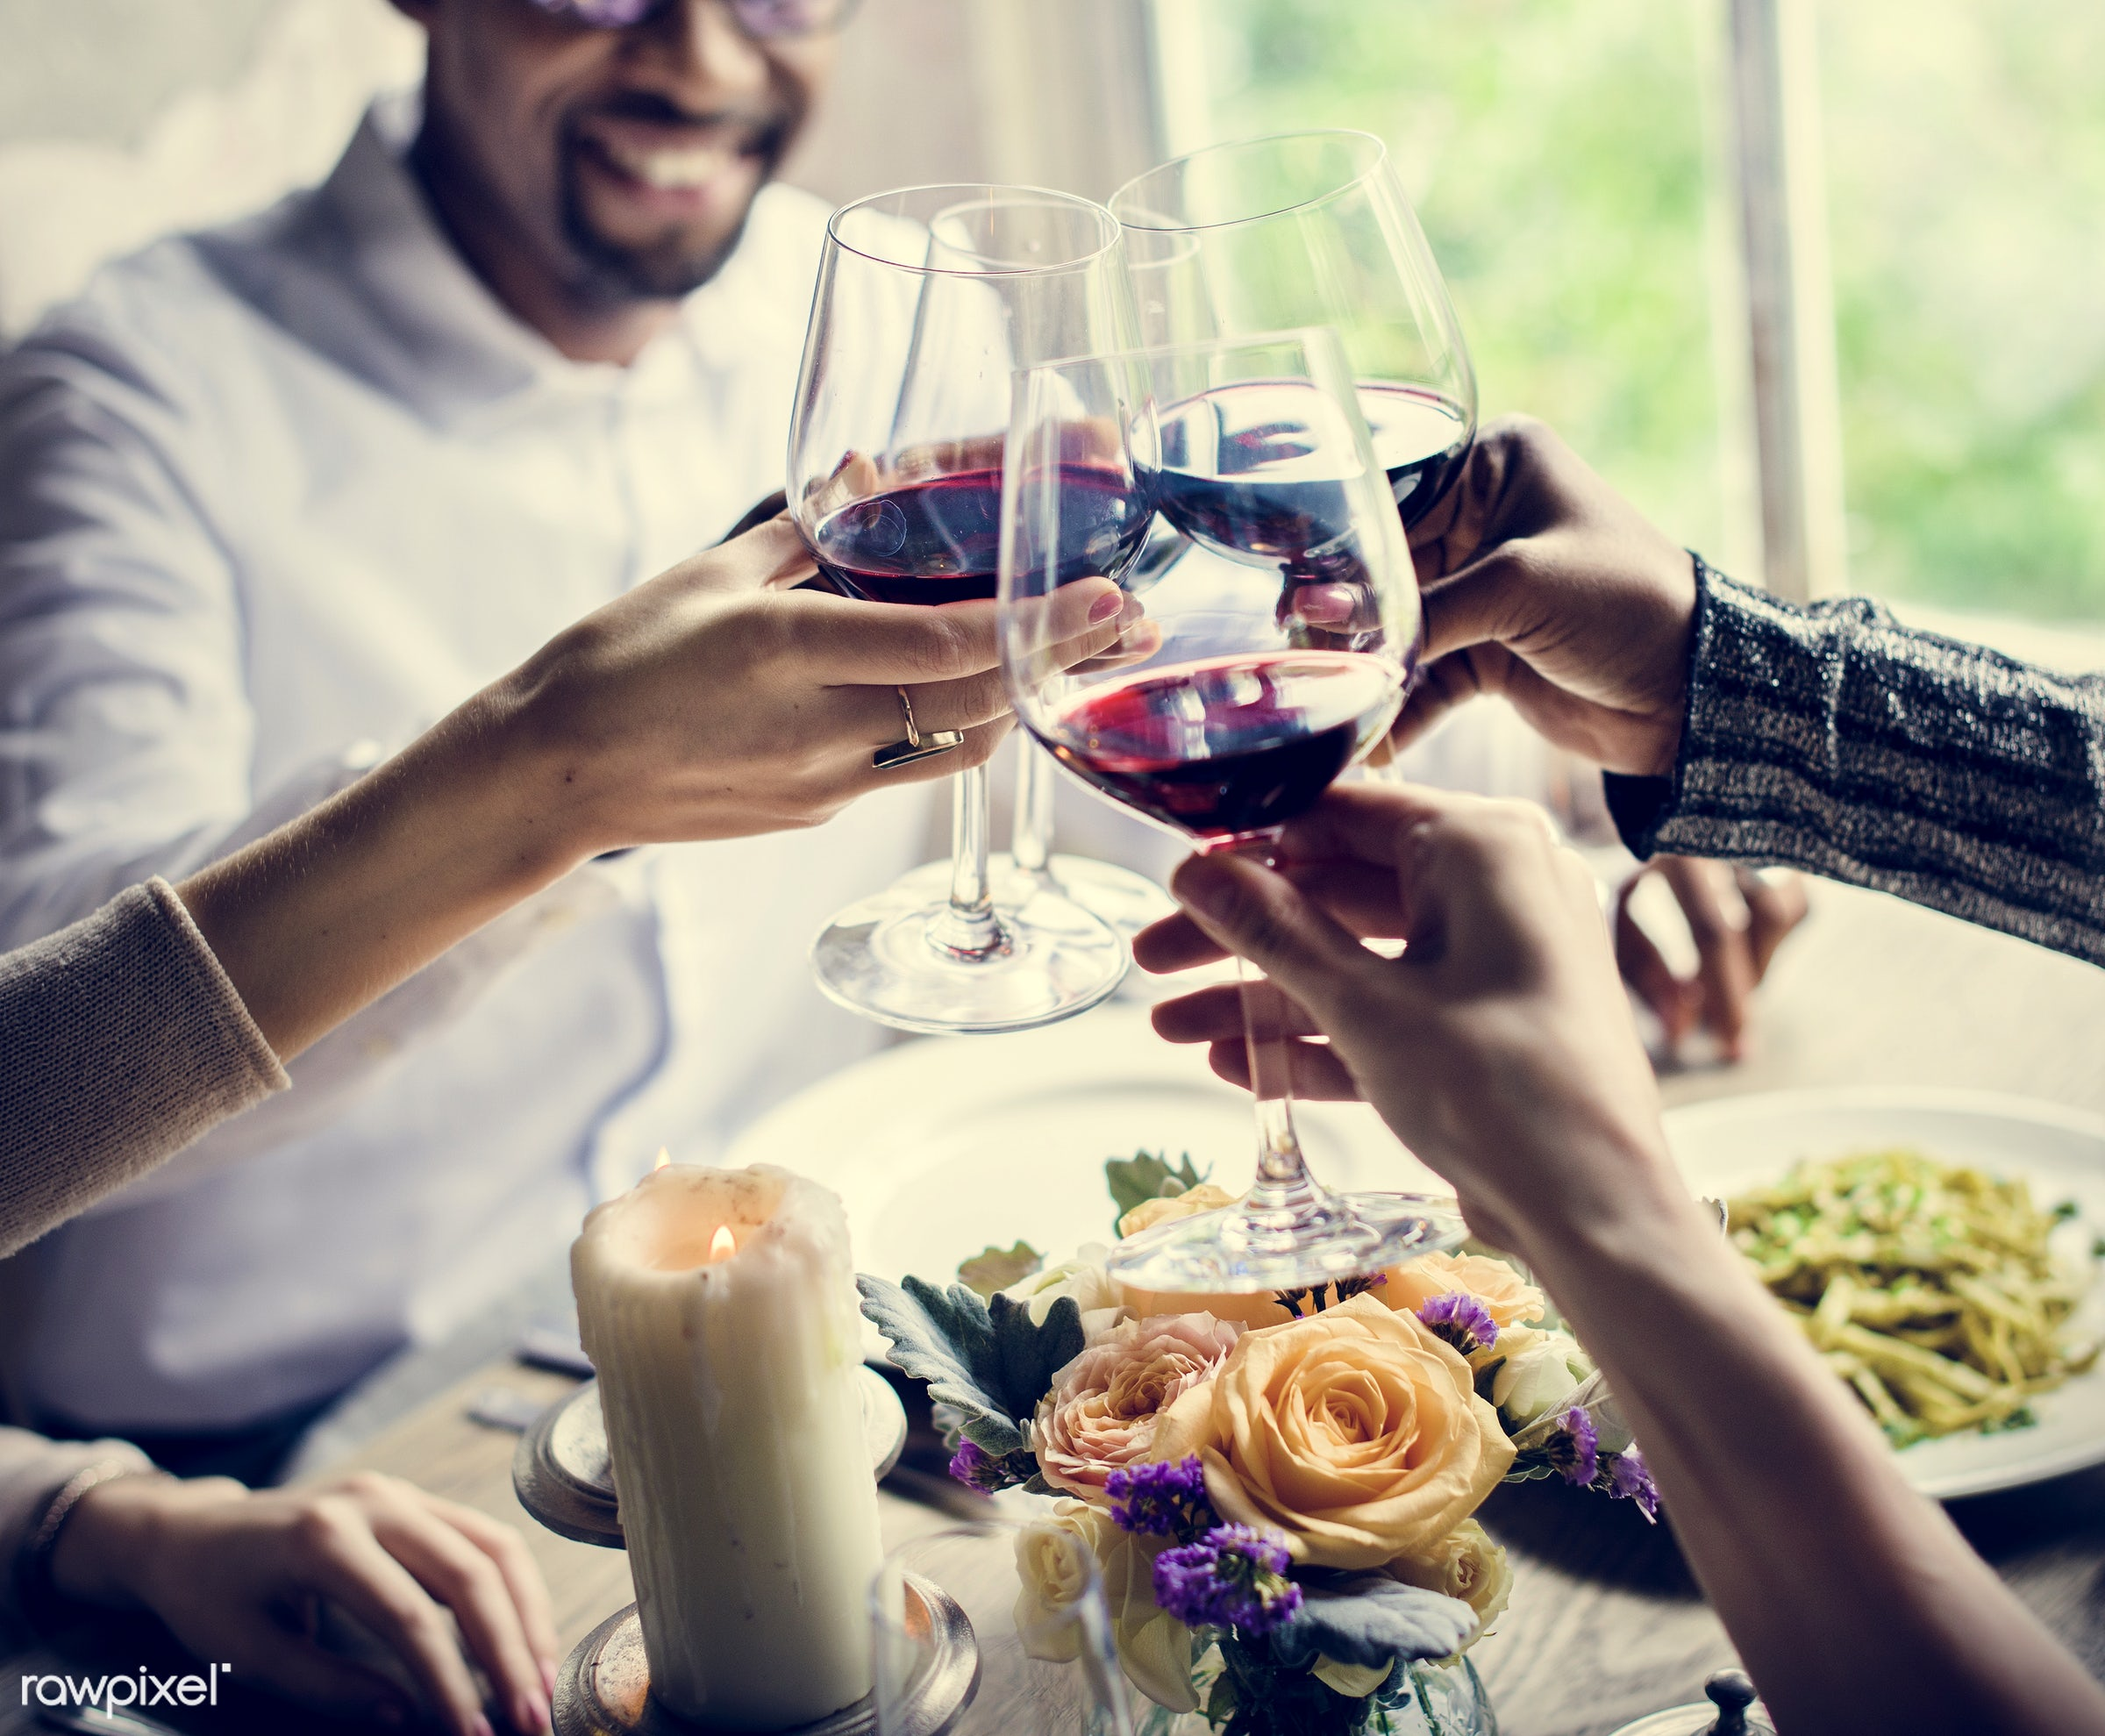 expression, person, cuisine, people, dished, together, caucasian, friends, gather, woman, drink, candles, friendship, lunch...